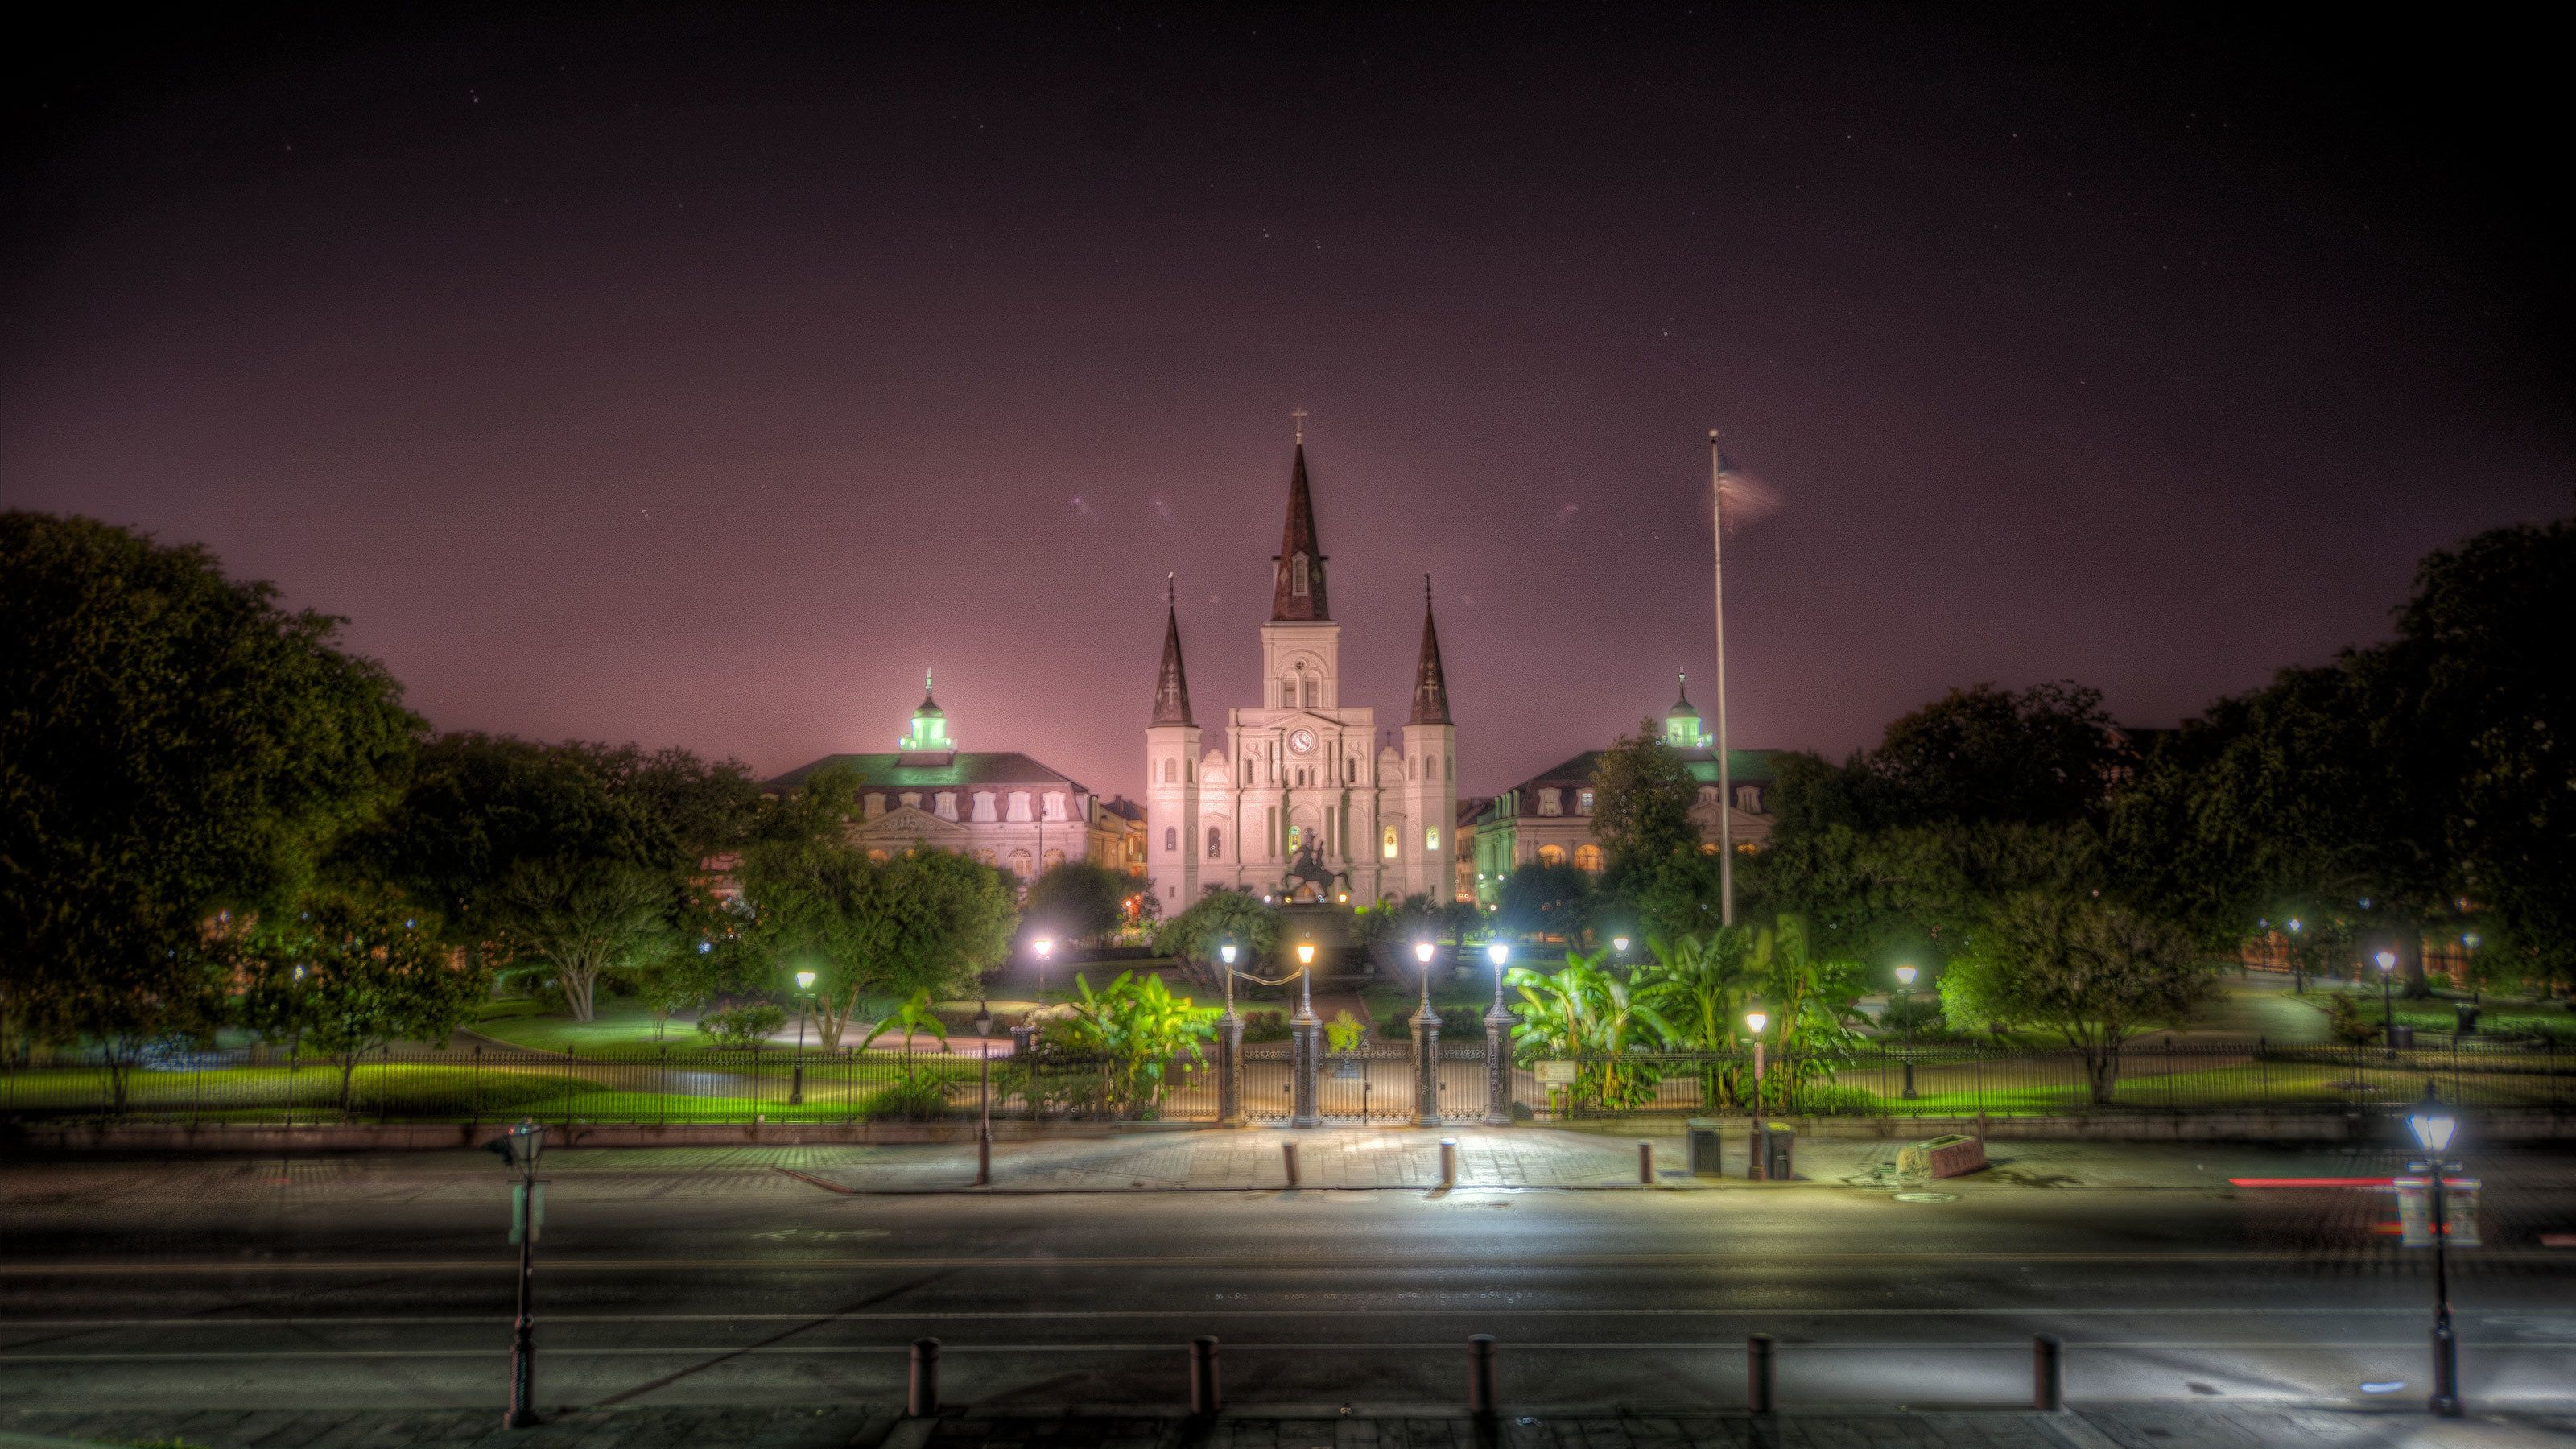 St. Louis Cathedral at a distance at night in New Orleans